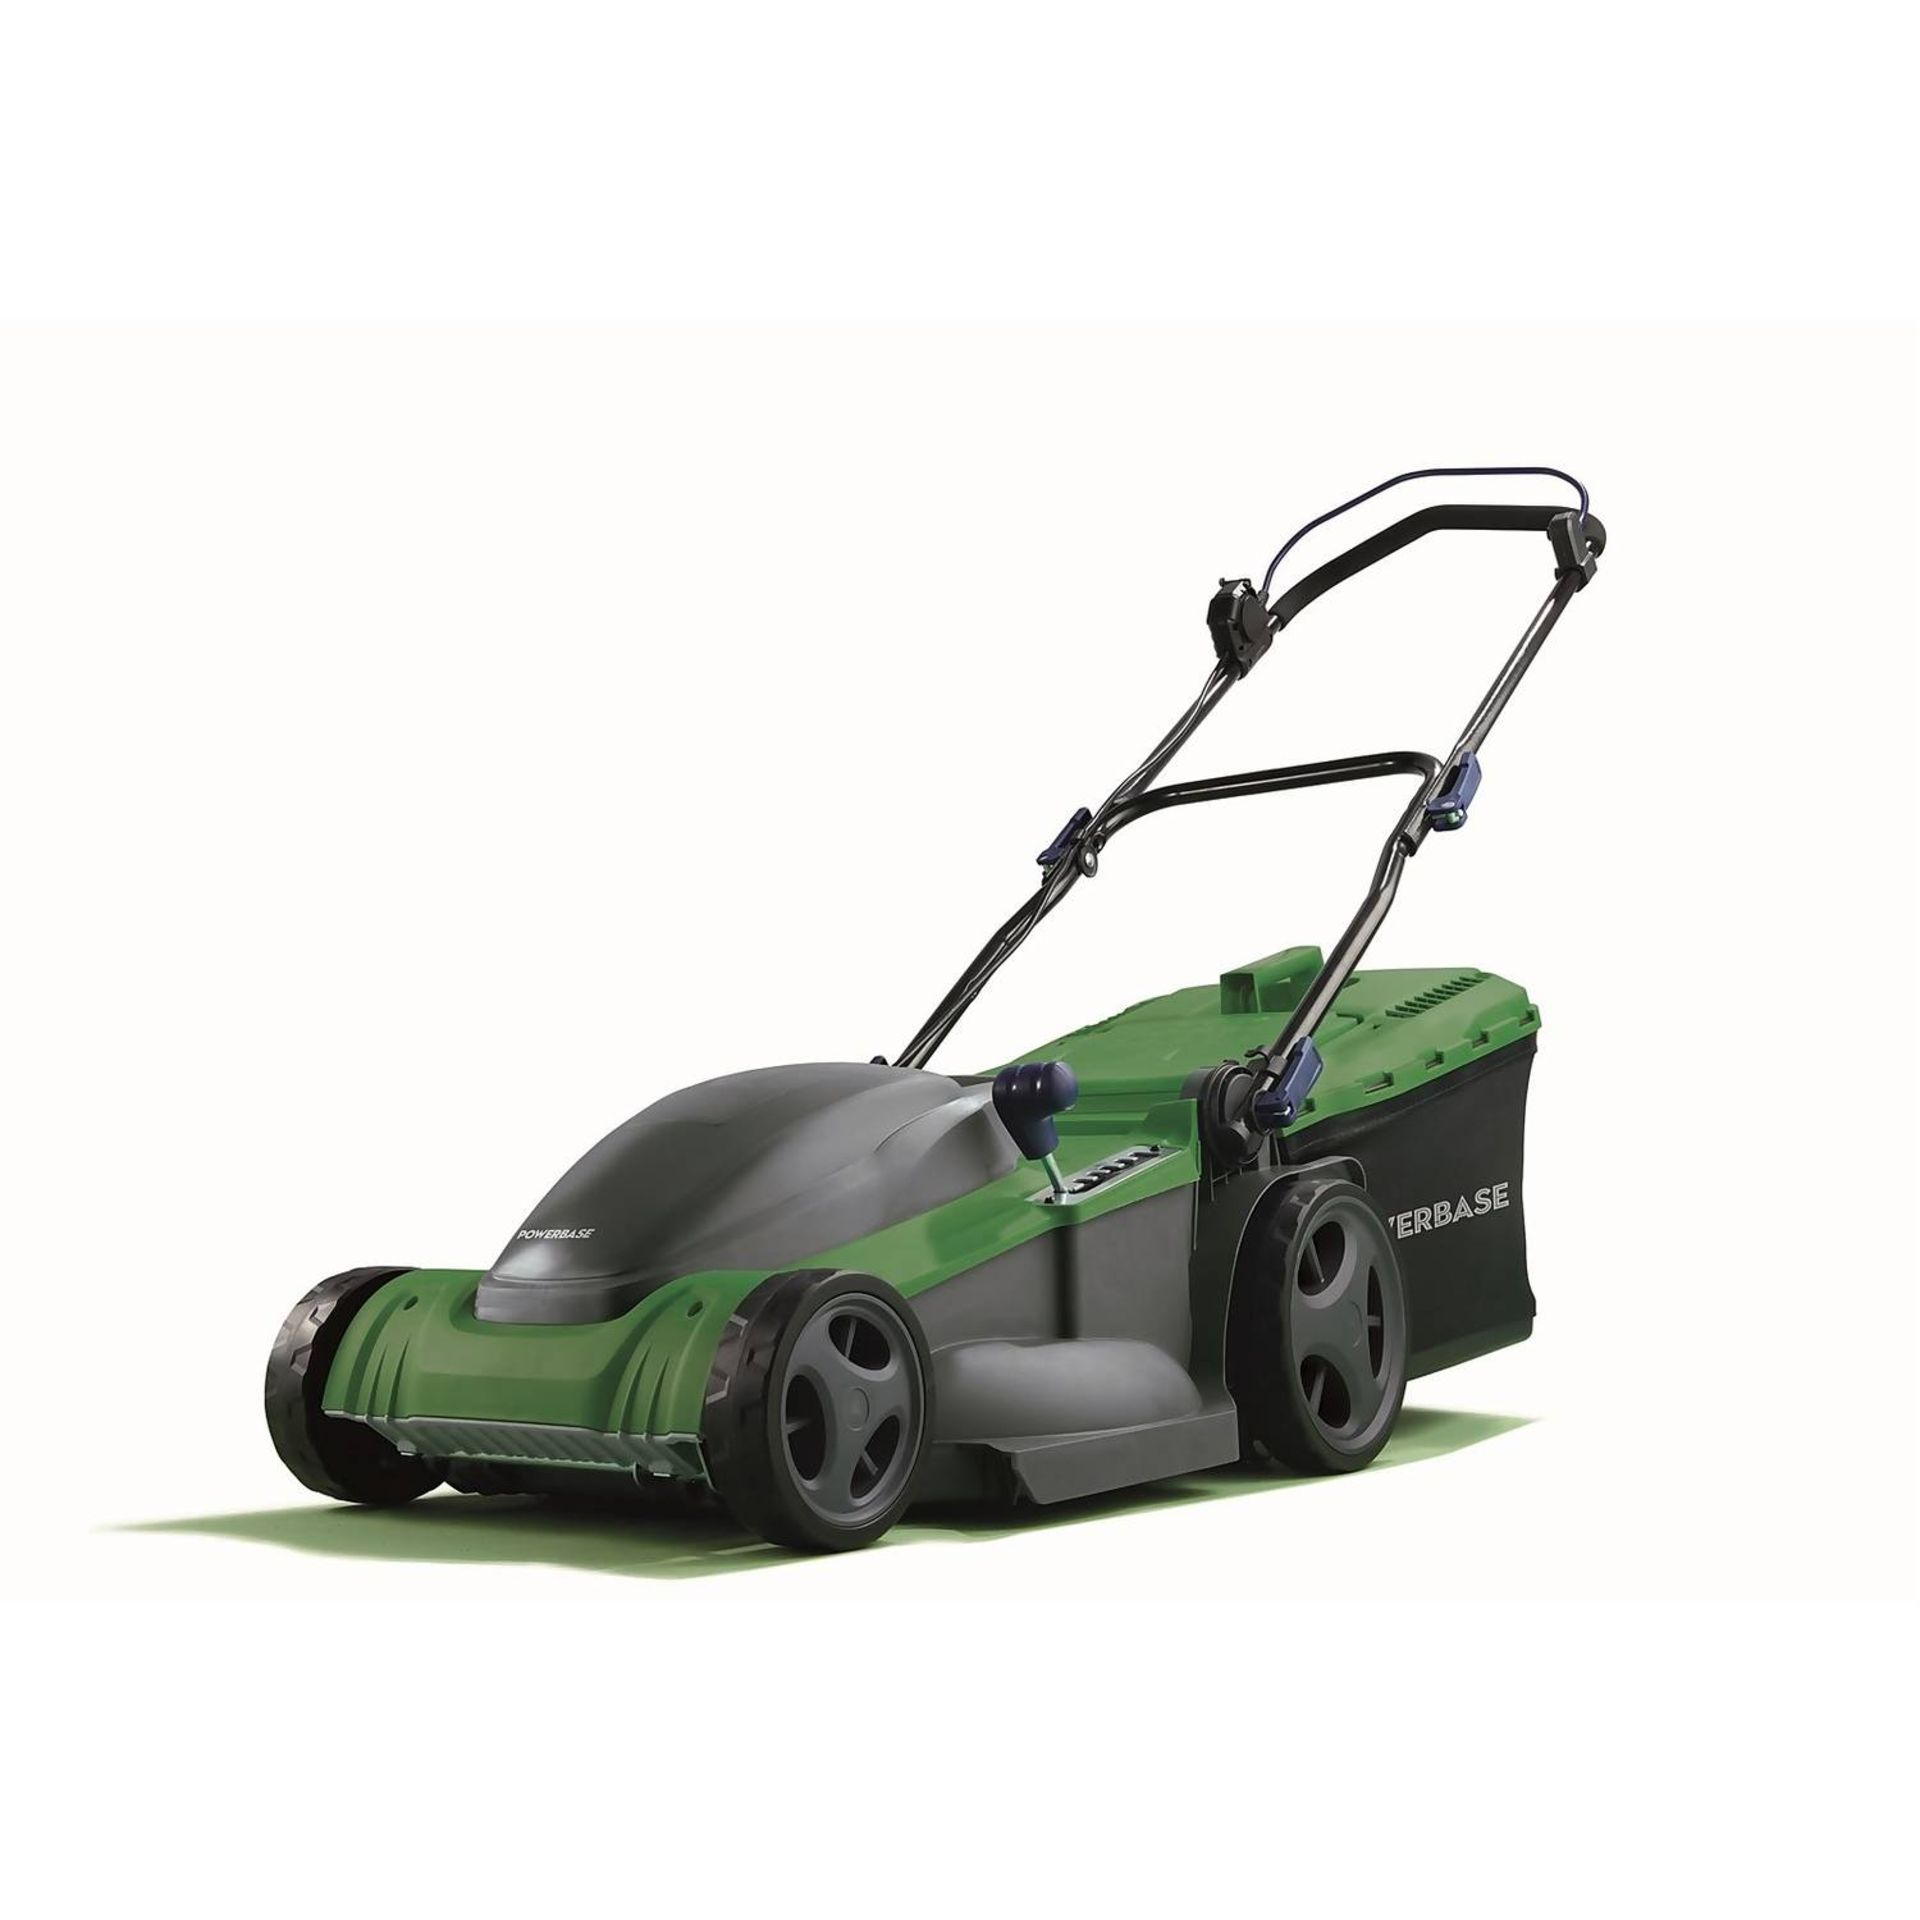 (P8) 1x Powerbase 41cm 1800W Electric Rotary Lawn Mower RRP £119. Contents Appear As New – Clean,